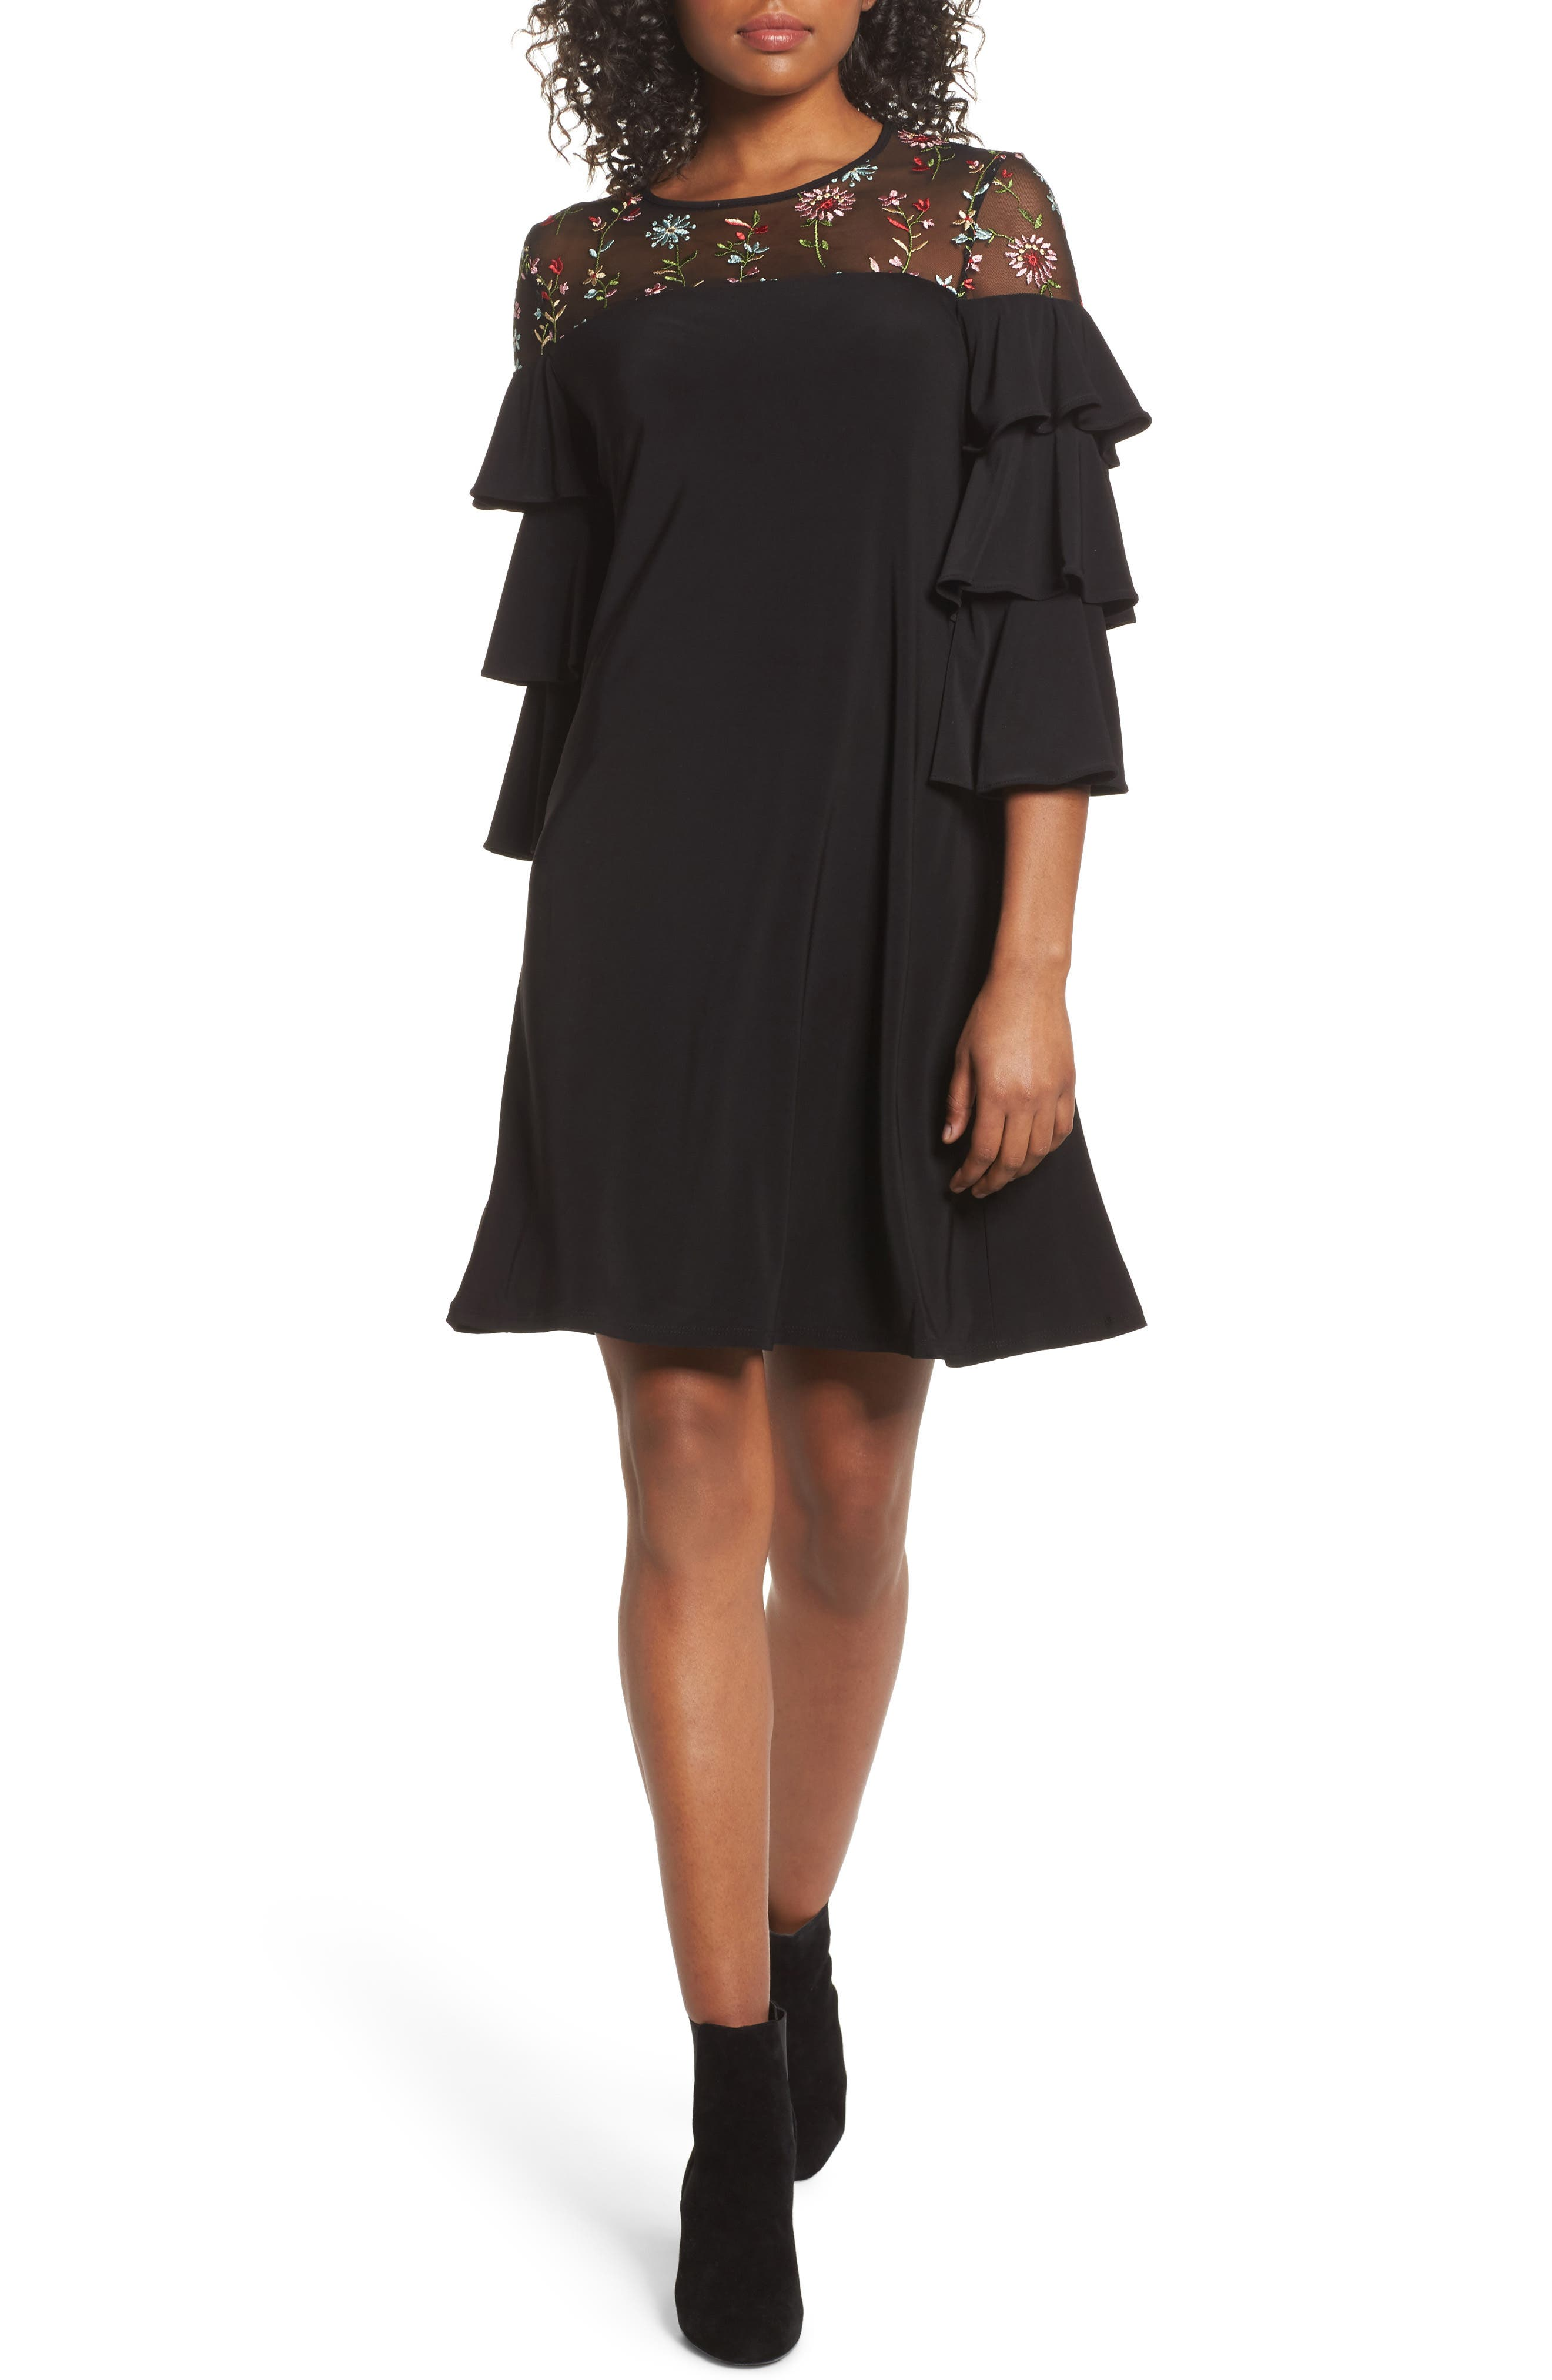 Alternate Image 1 Selected - Gabby Skye Tiered Sleeve Trapeze Dress